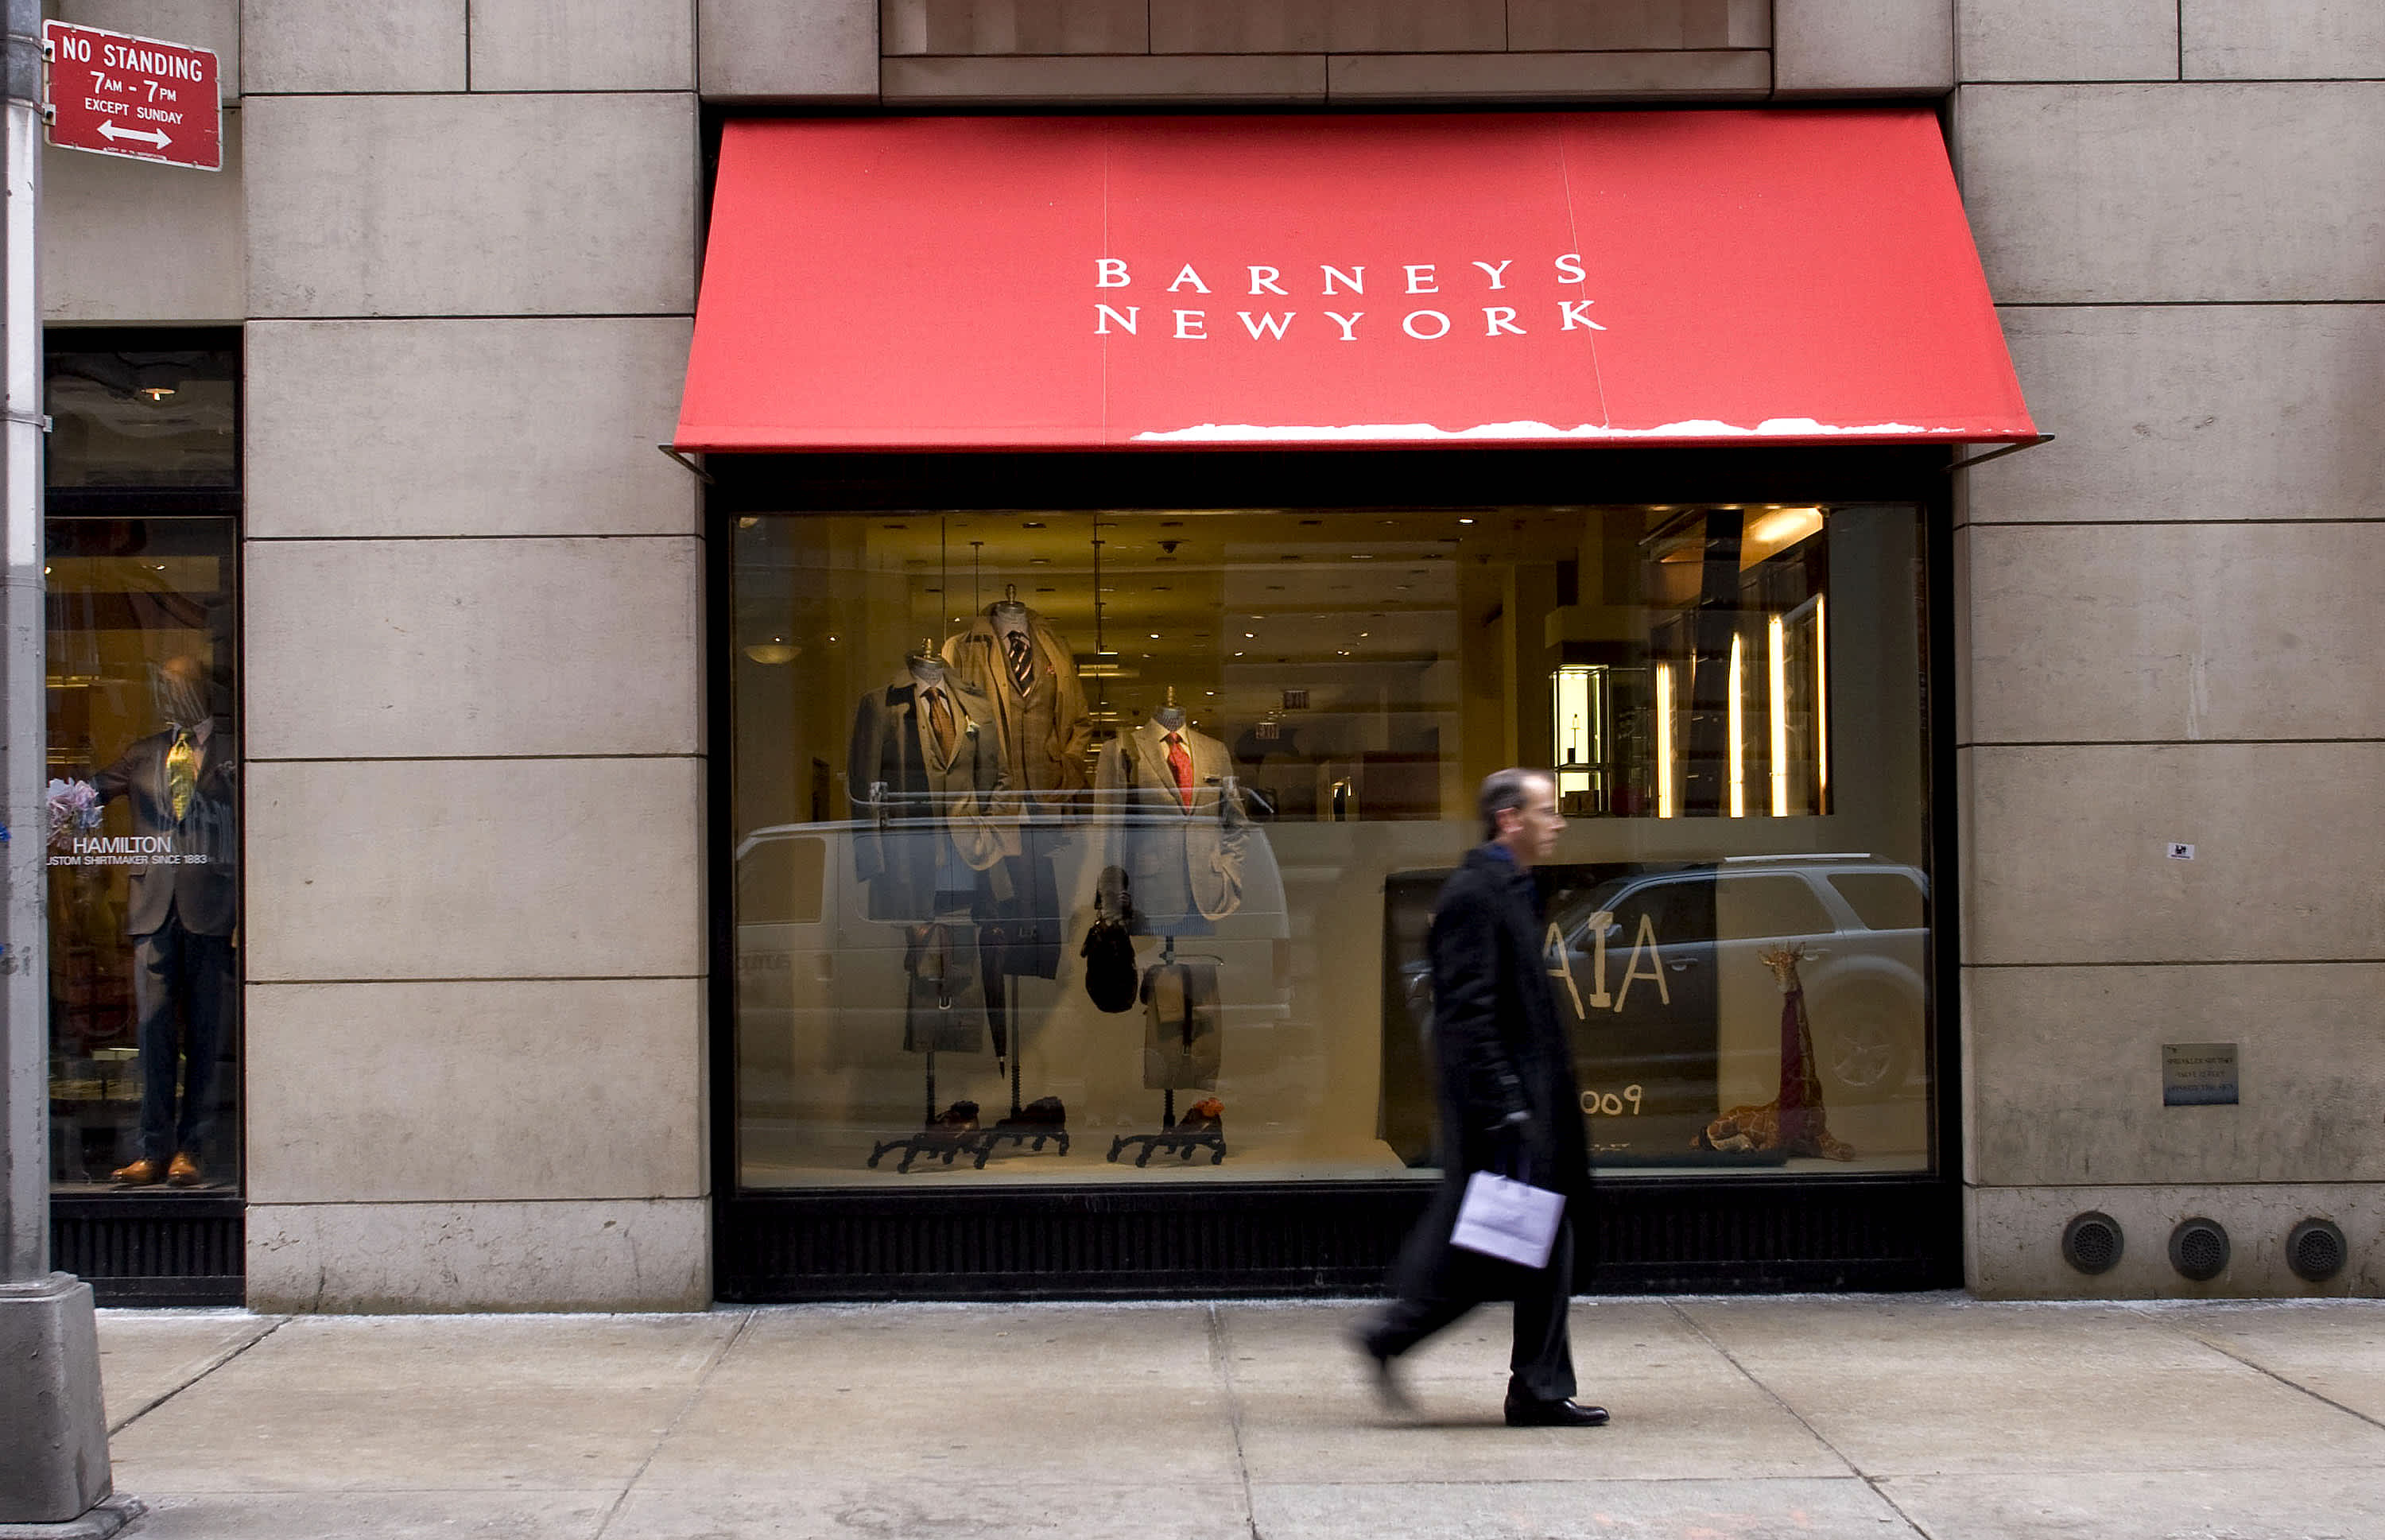 Barneys could launch more stores inside Saks in Authentic Brands brands deal